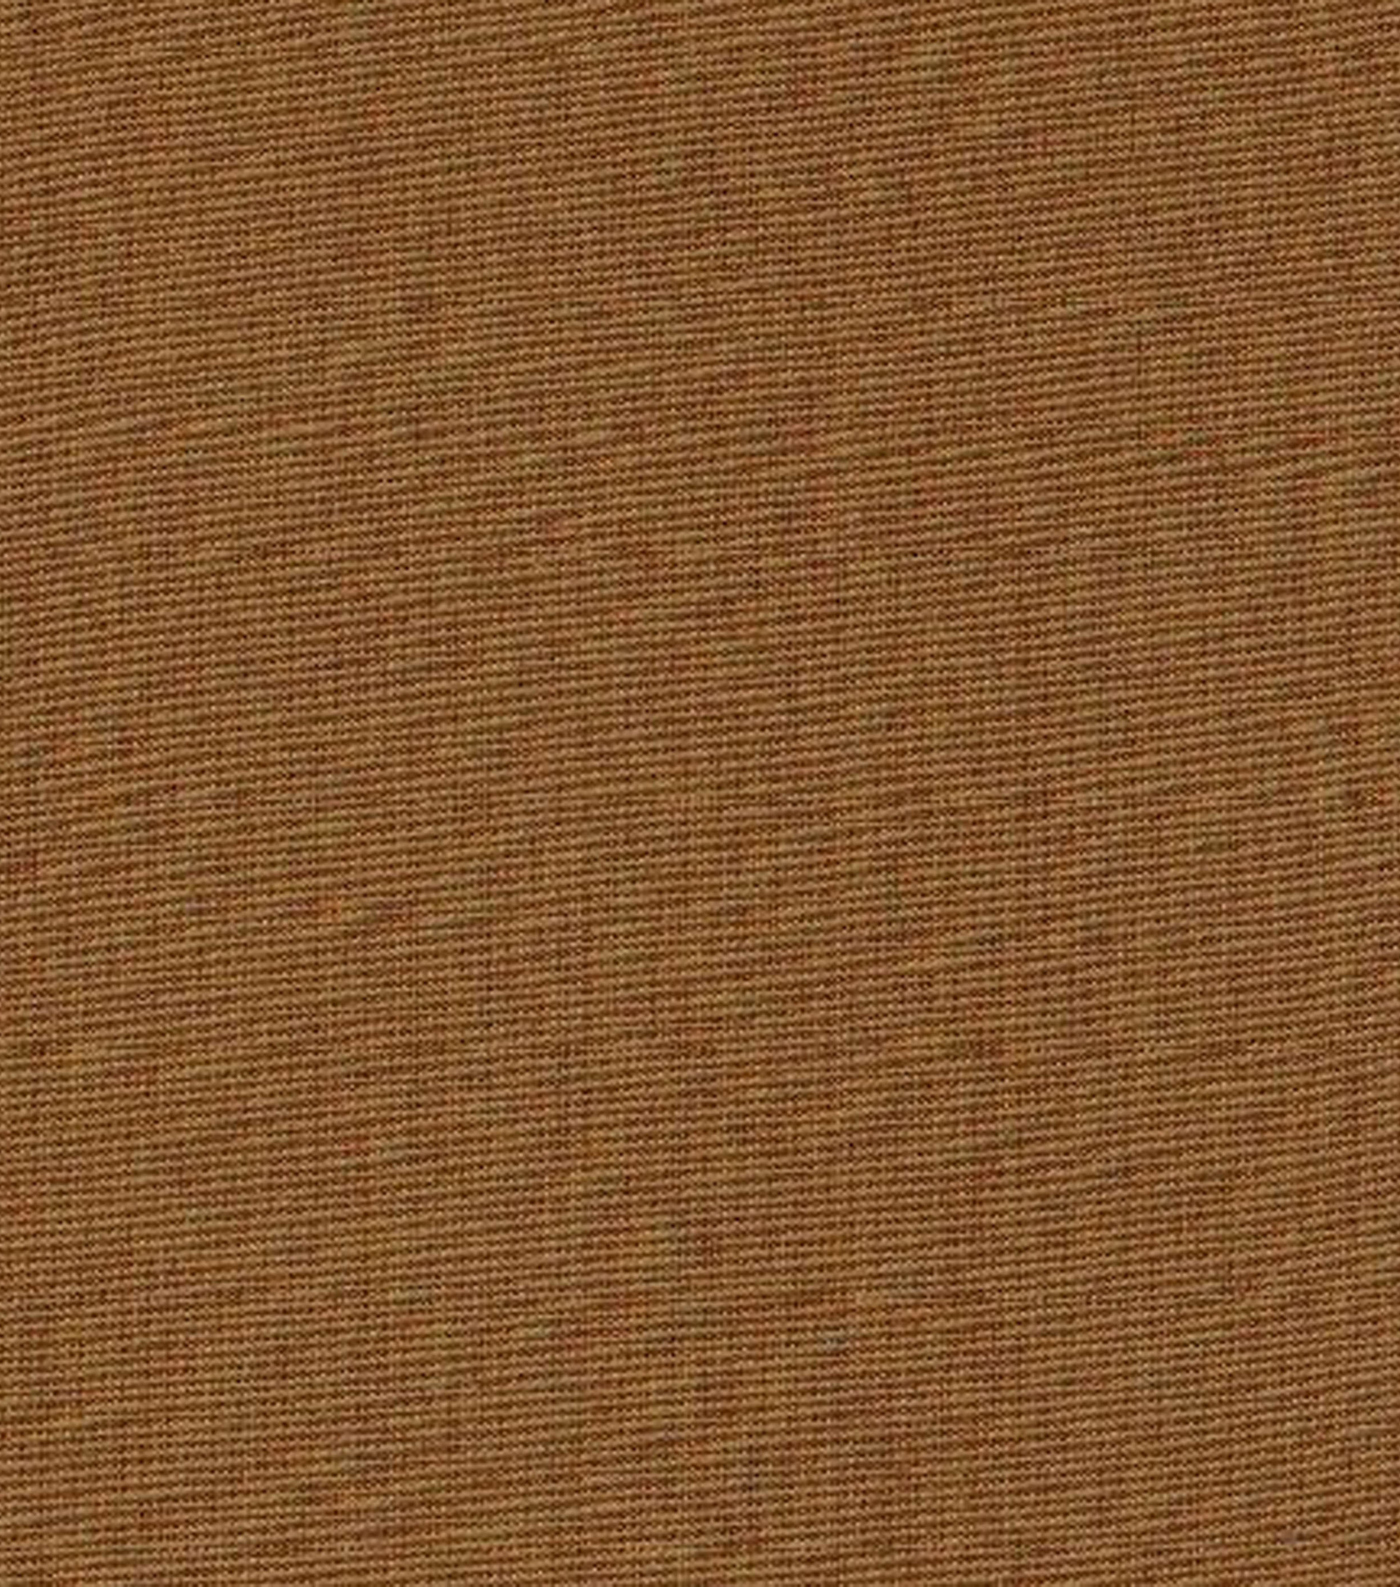 Country Classic Cotton Quilt Fabric Solid Joann